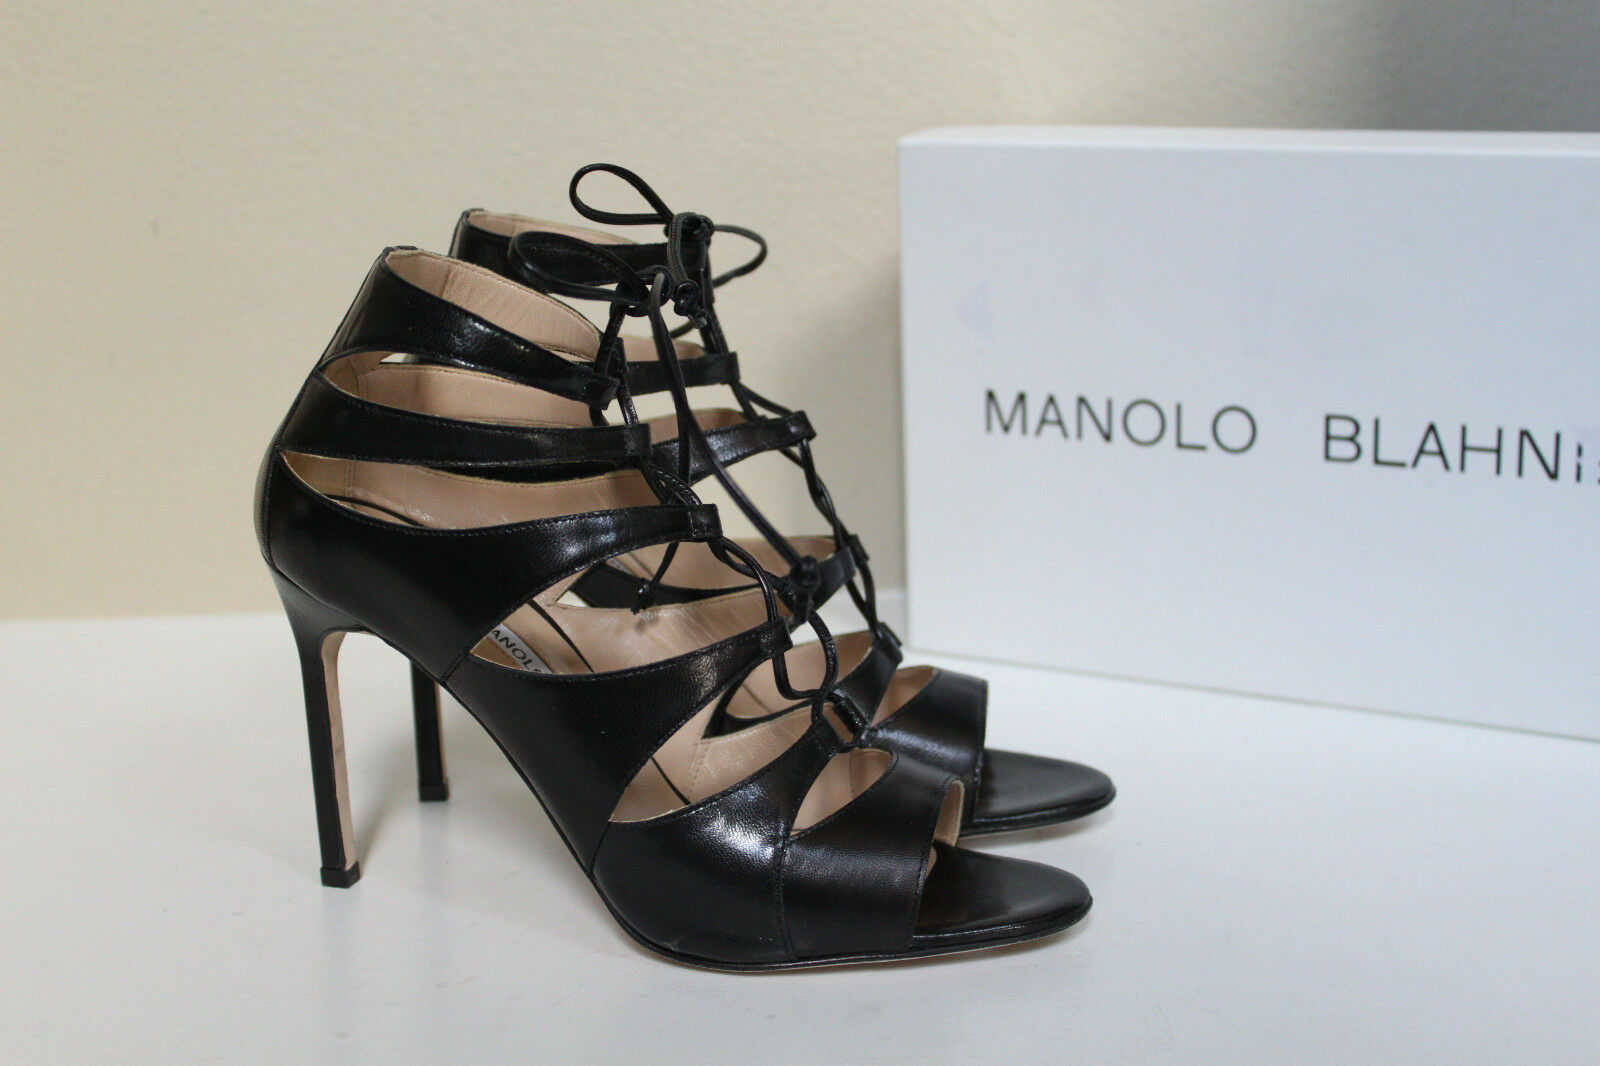 New sz 7.5   37.5 Manolo Blahnik Maisa Black Leather Lace up Ankle Sandal shoes